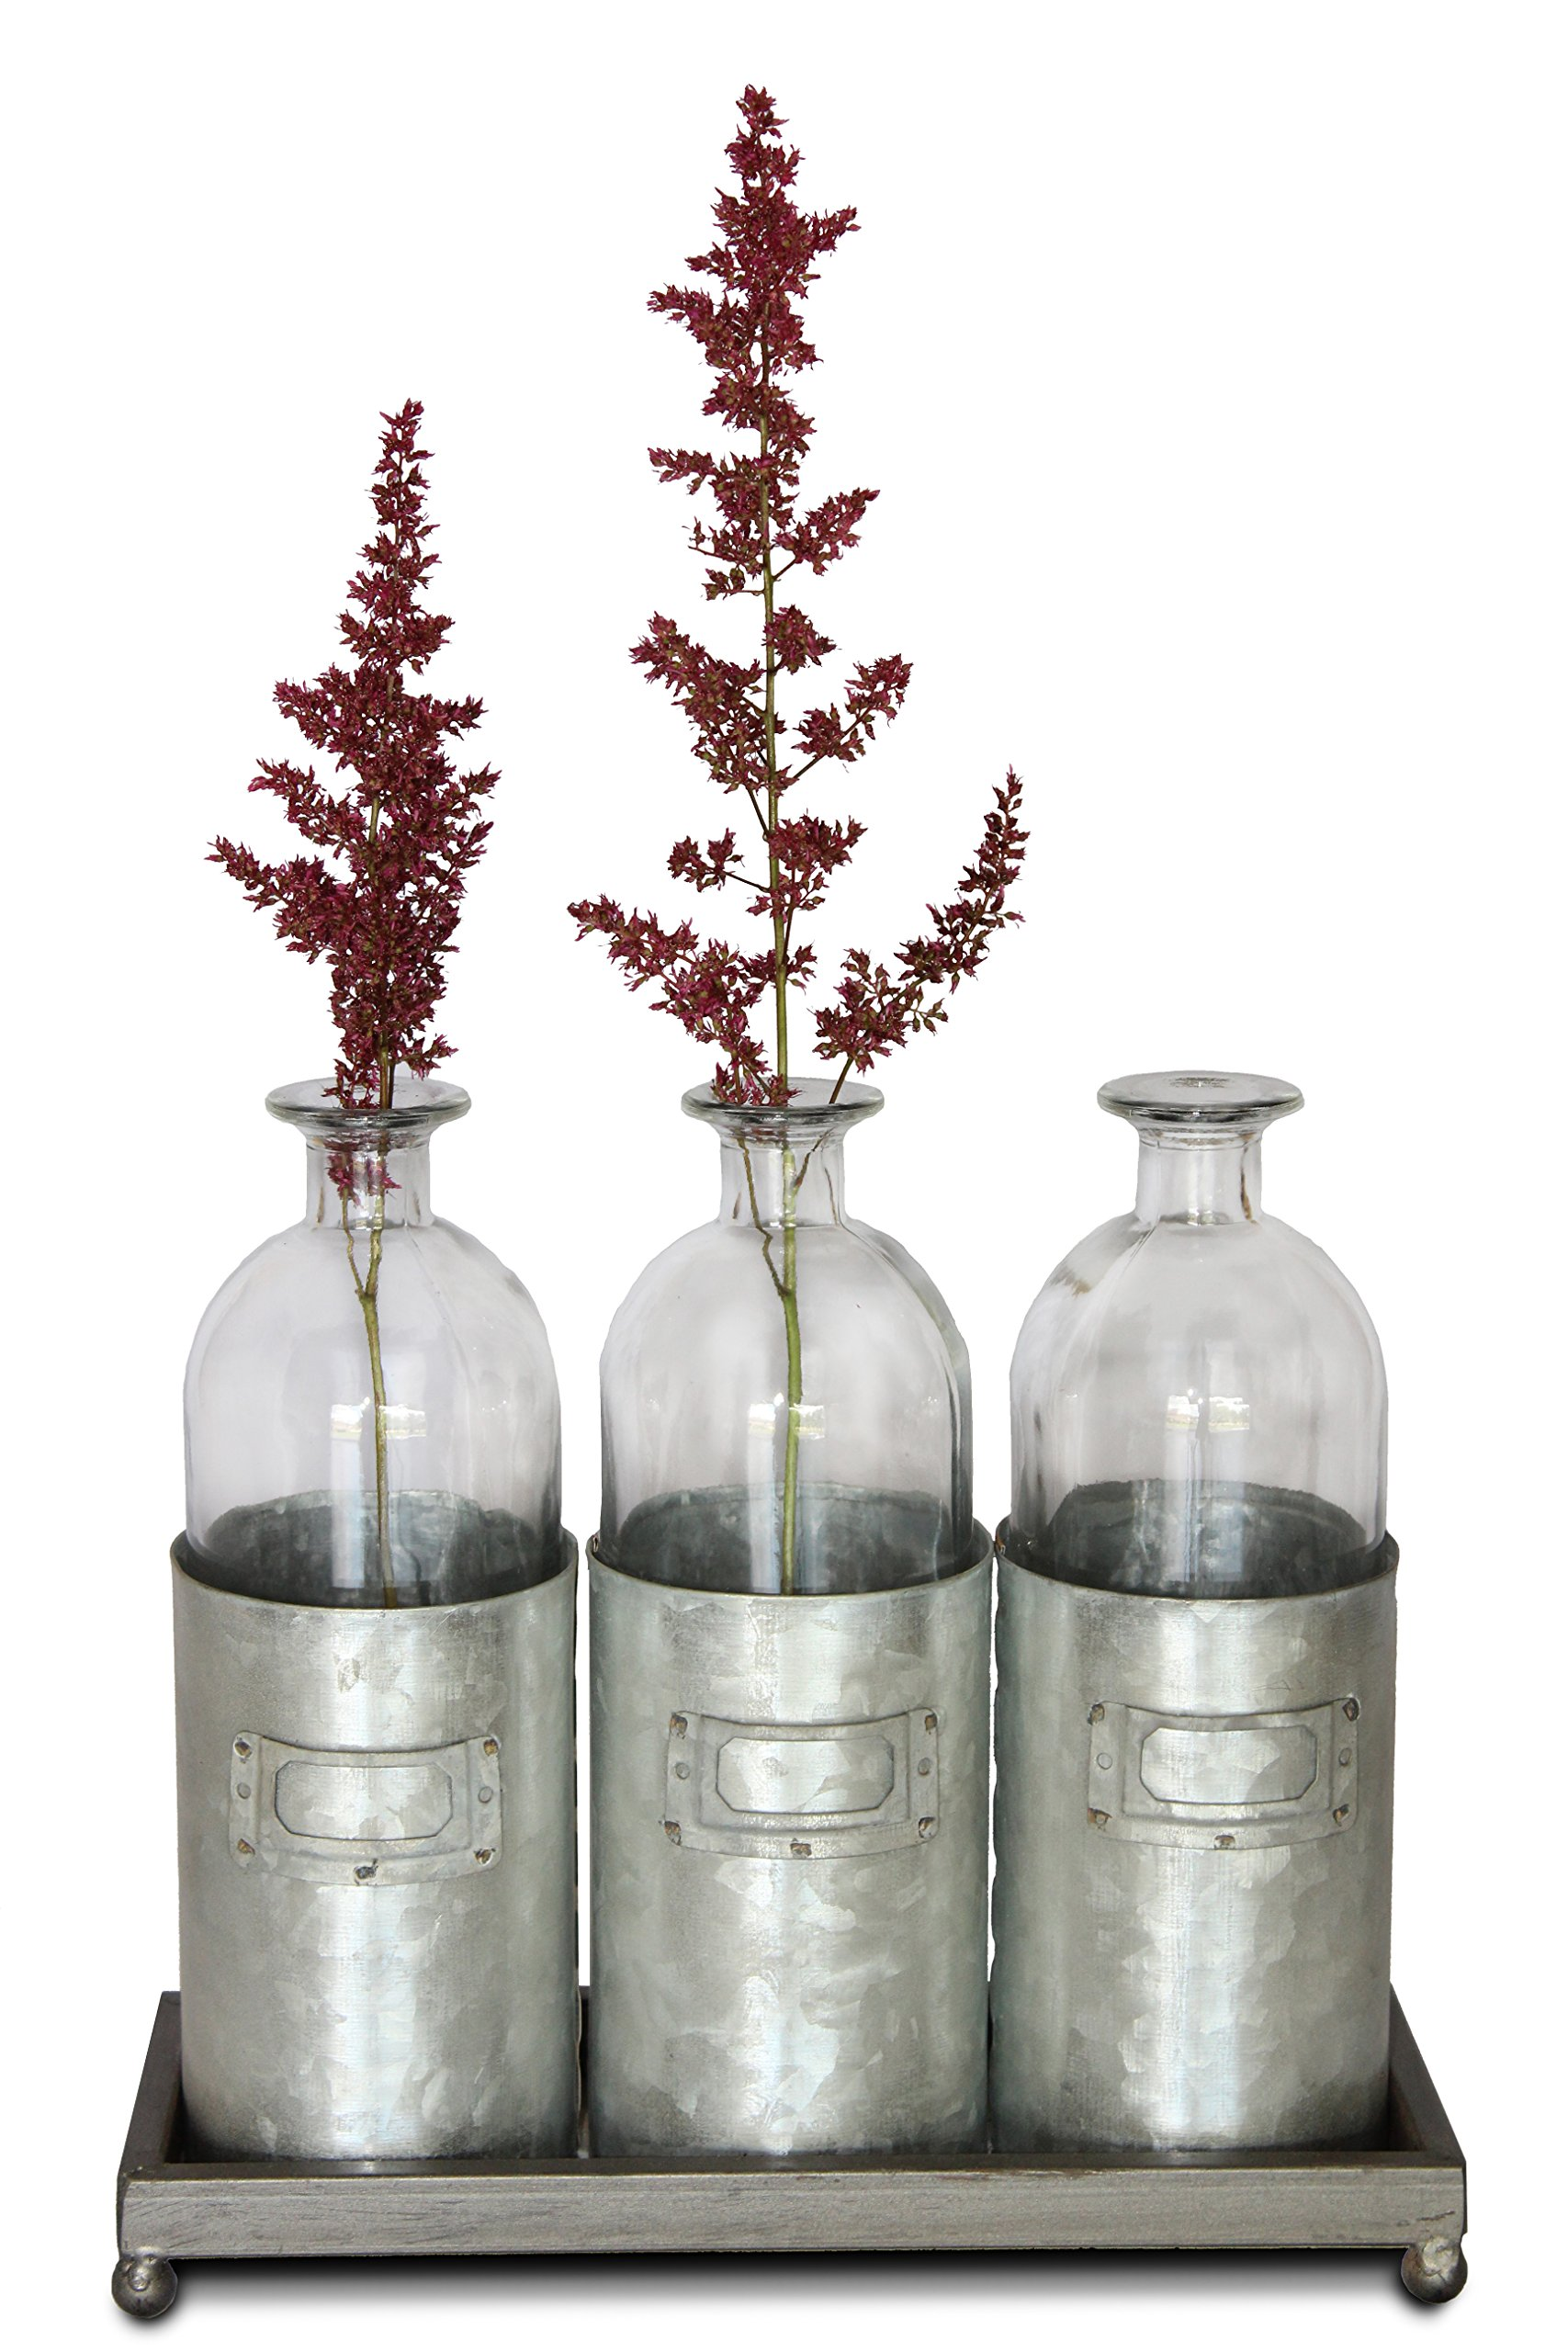 Glass Vases Metal Sitting Holder for Table Top, (Tall, Tin Box, Triple Vase, Galvanized, Milk Bottle, 12 inches) | by Urban Legacy by Urban Legacy